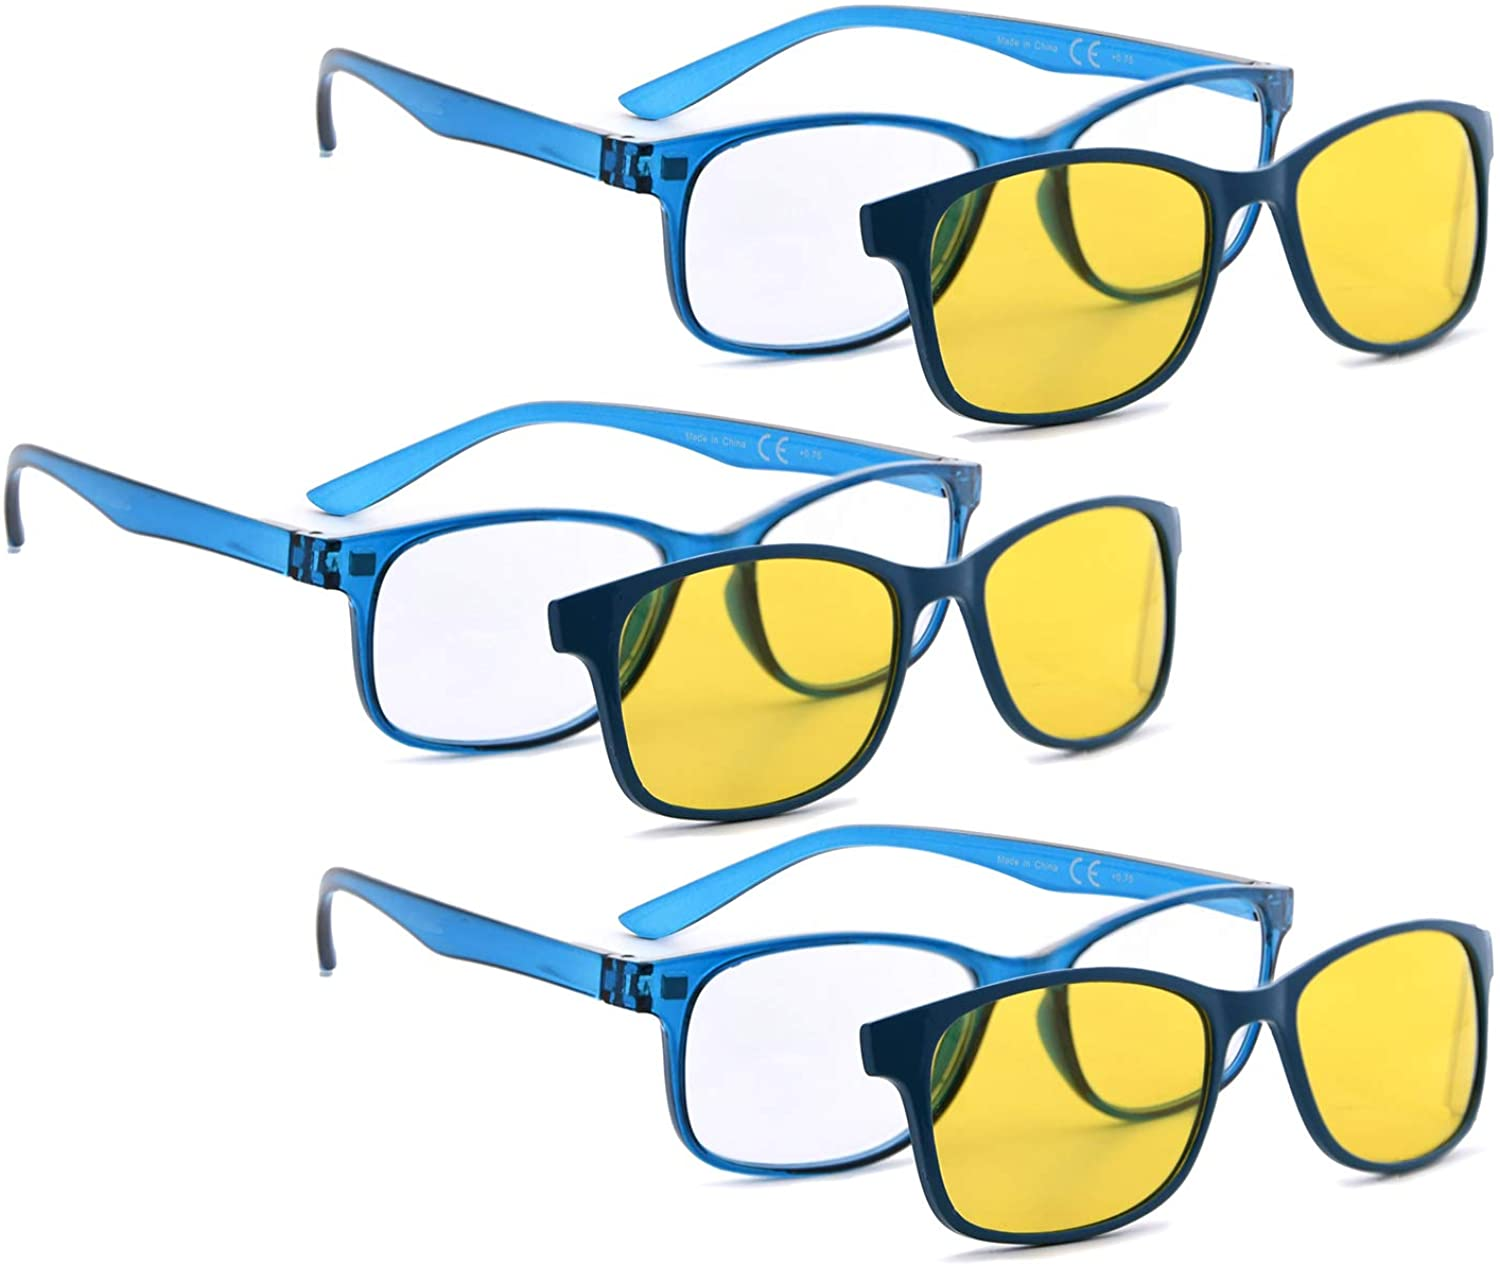 READING GLASSES Include Anti Blue Rays Photochromic(Yellow Change to Brown) Polarized Lens Clip on Glasses 3 pack